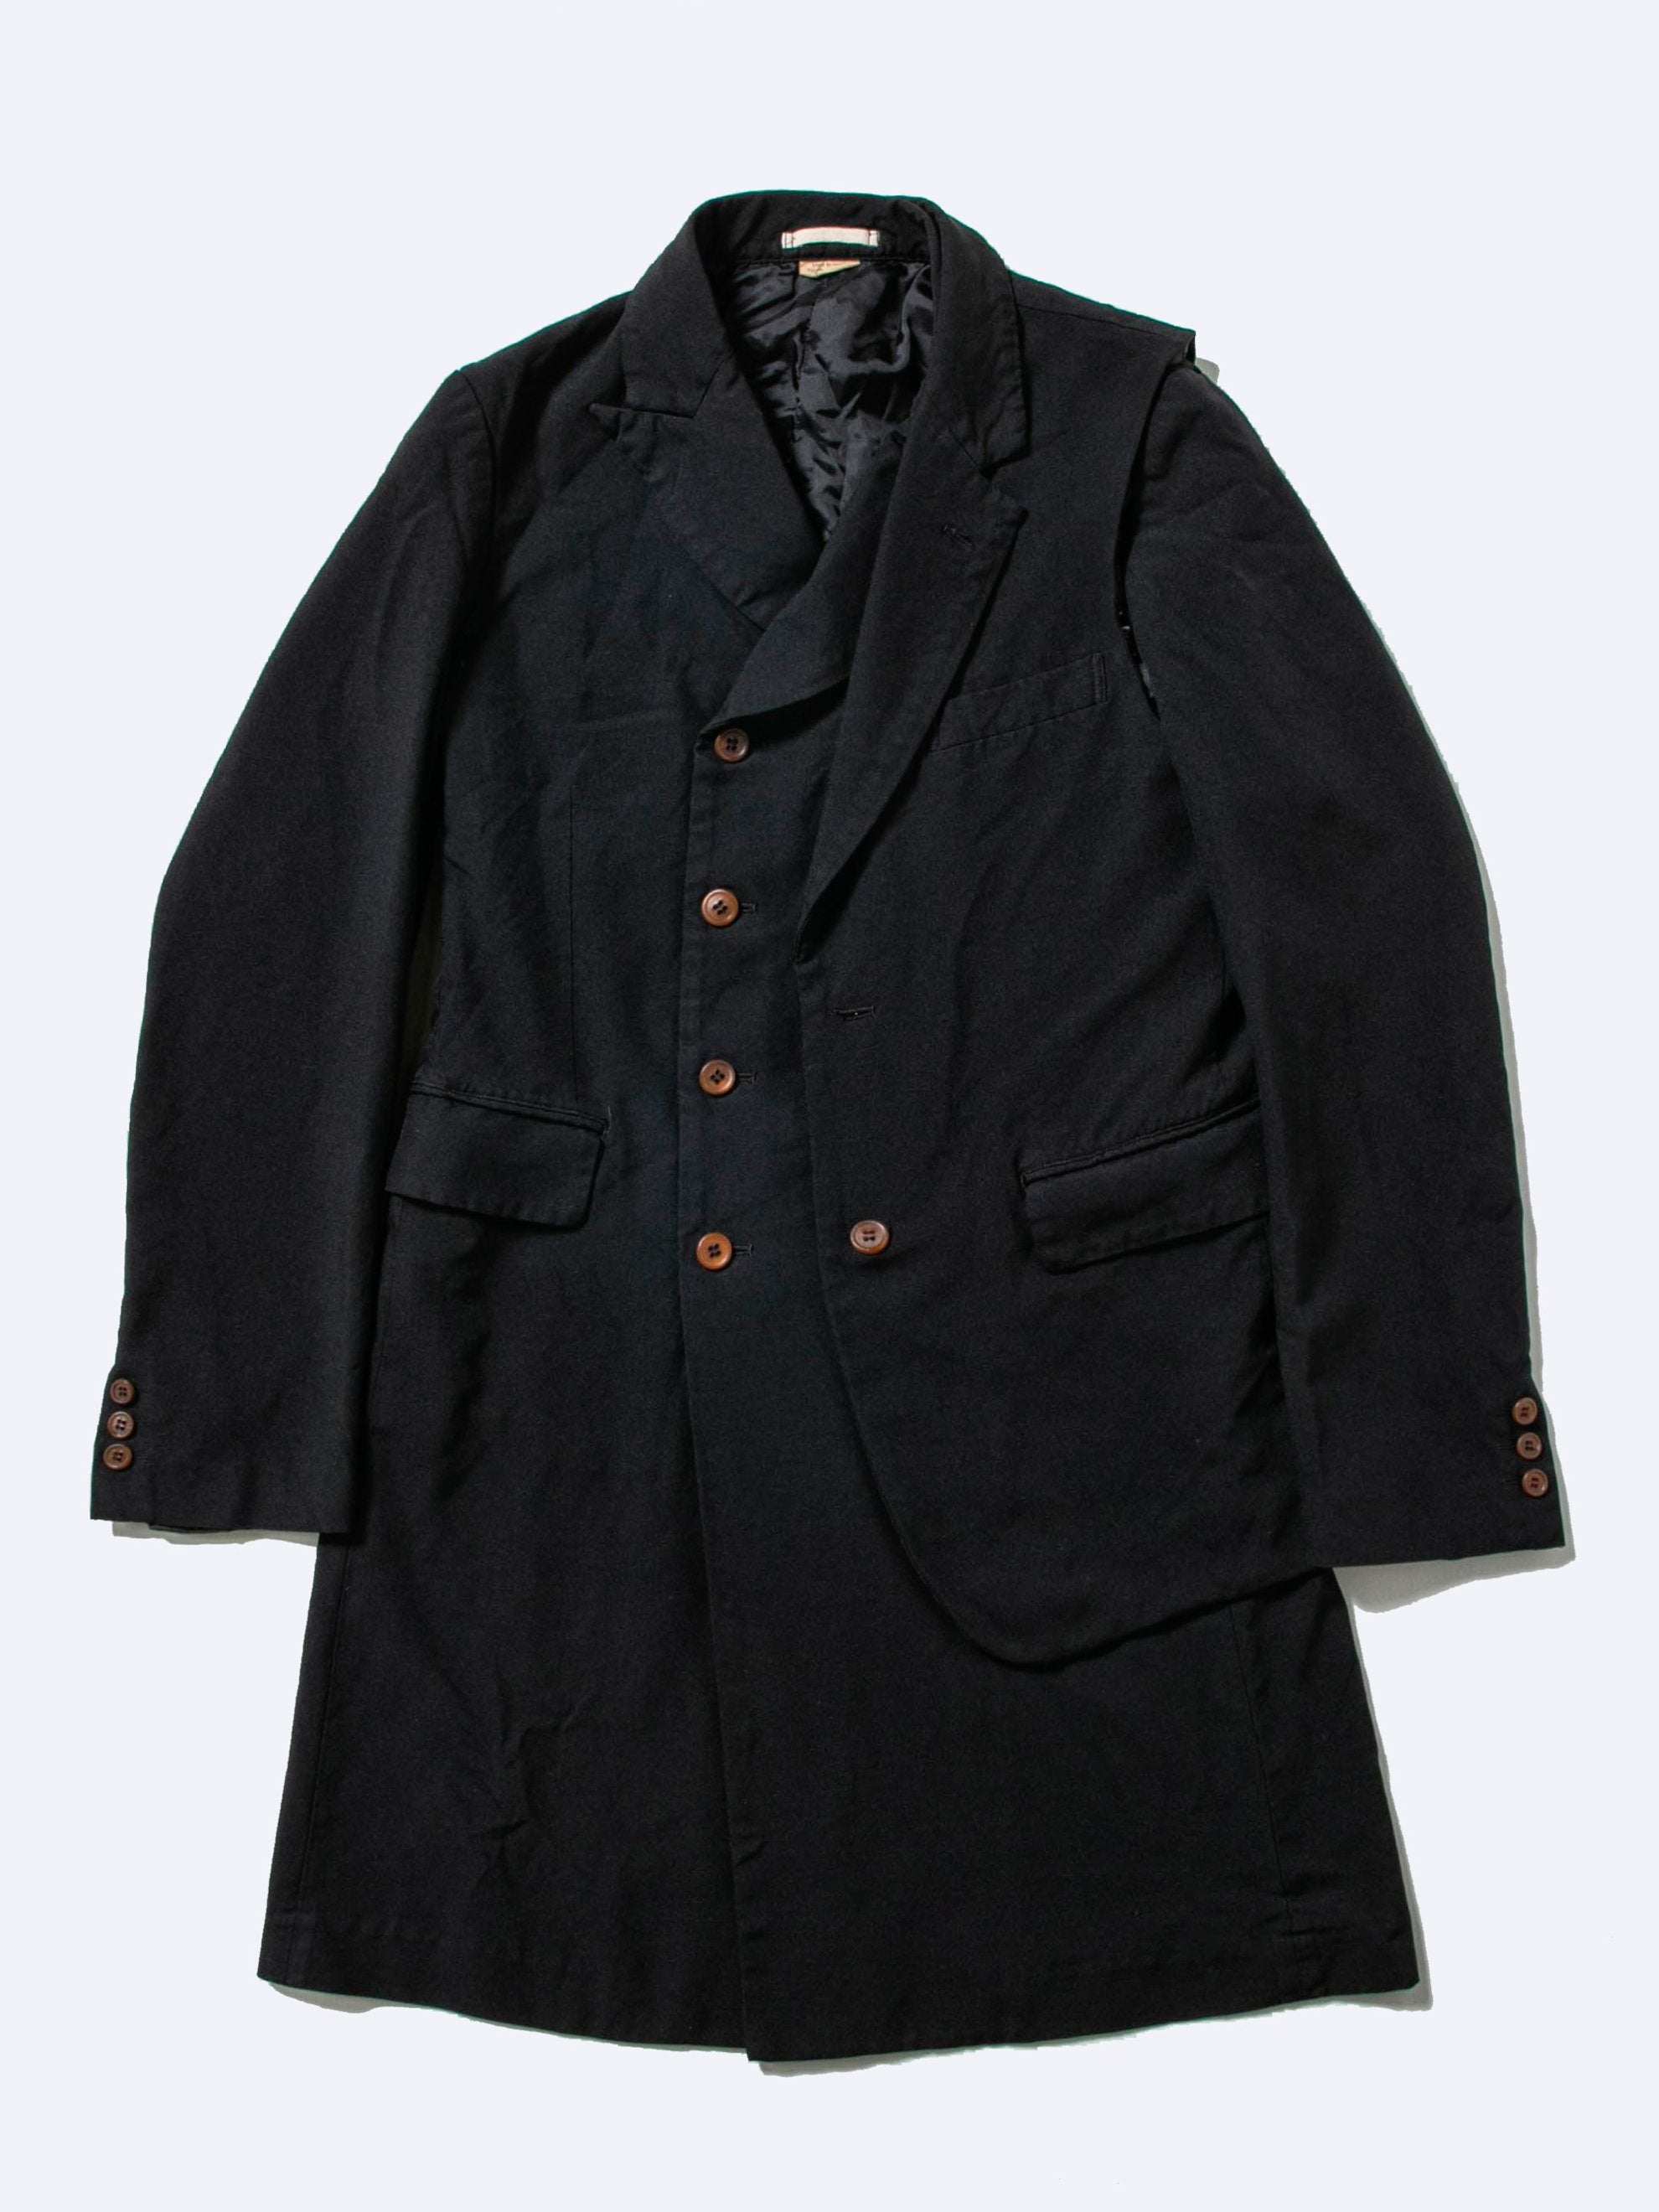 Black Reconstructed Double Breast Blazer Coat 1